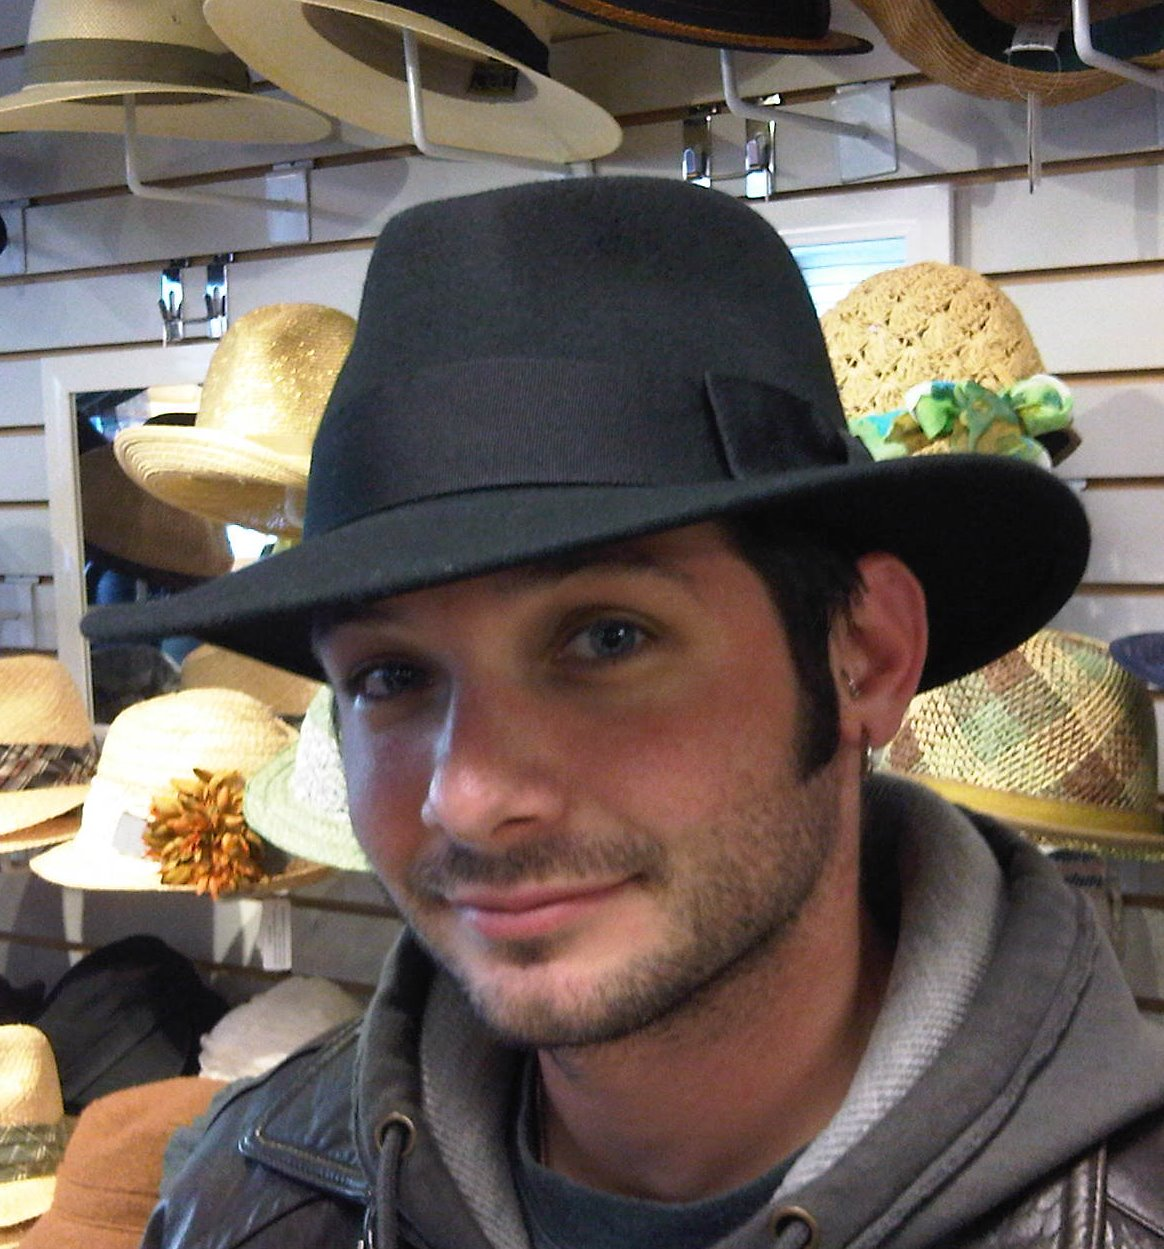 fedora in black from The Hat House NY